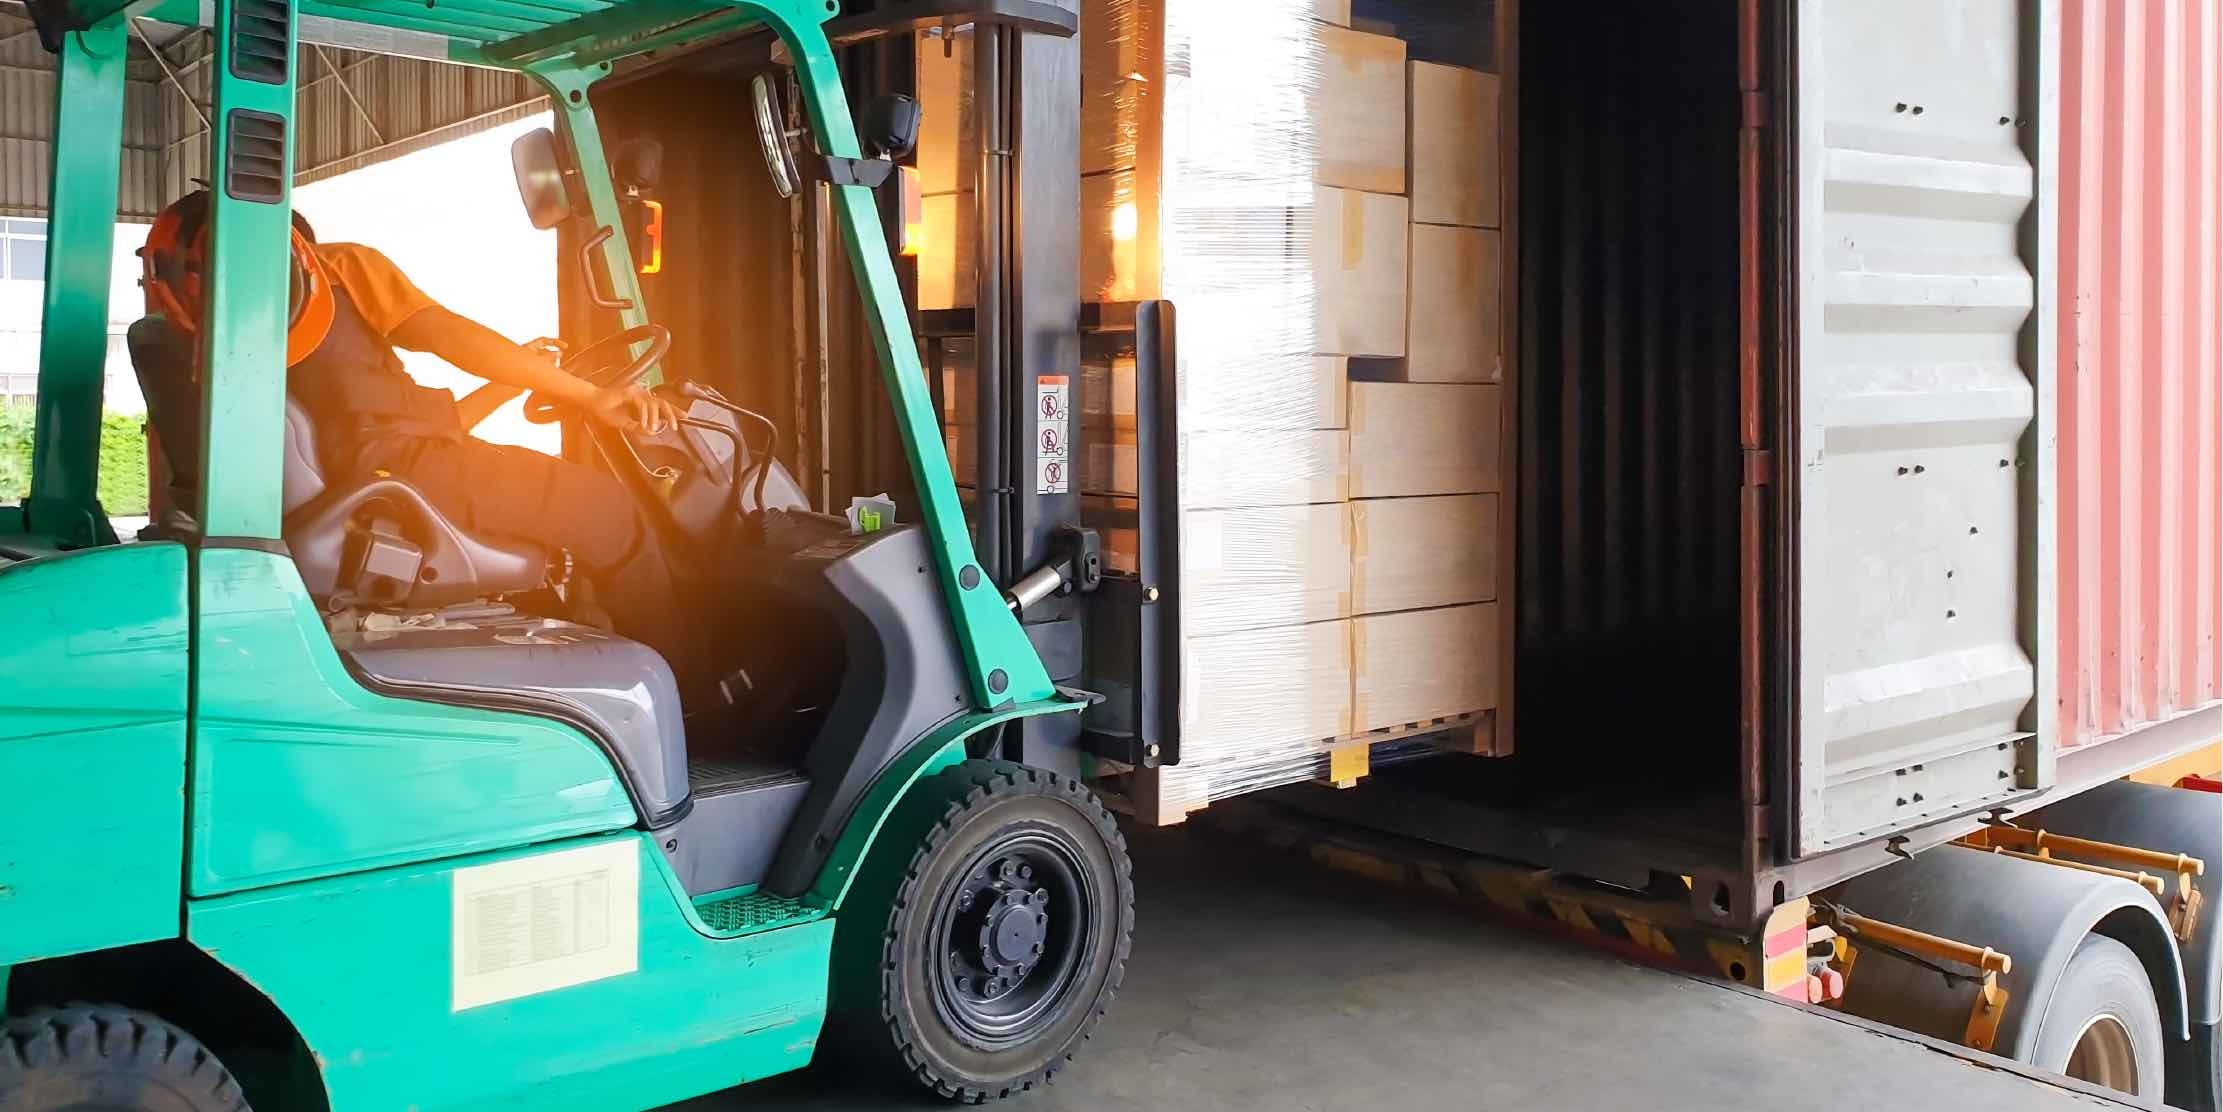 Safety requirements on loading docks